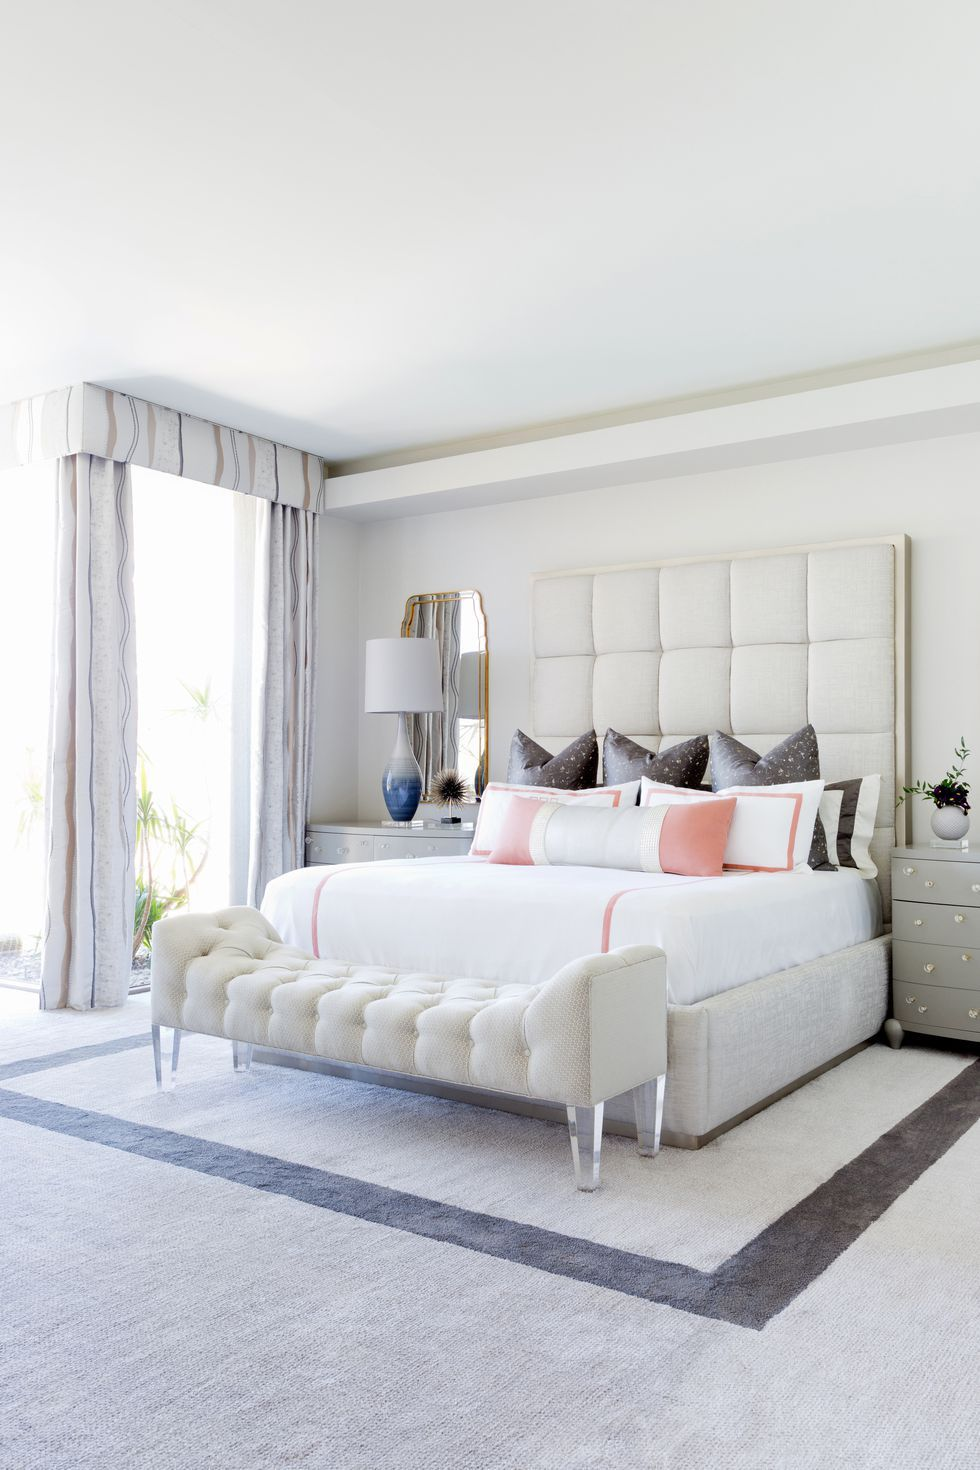 These Gorgeous Gray and White Bedrooms Are Full of Decor Ideas